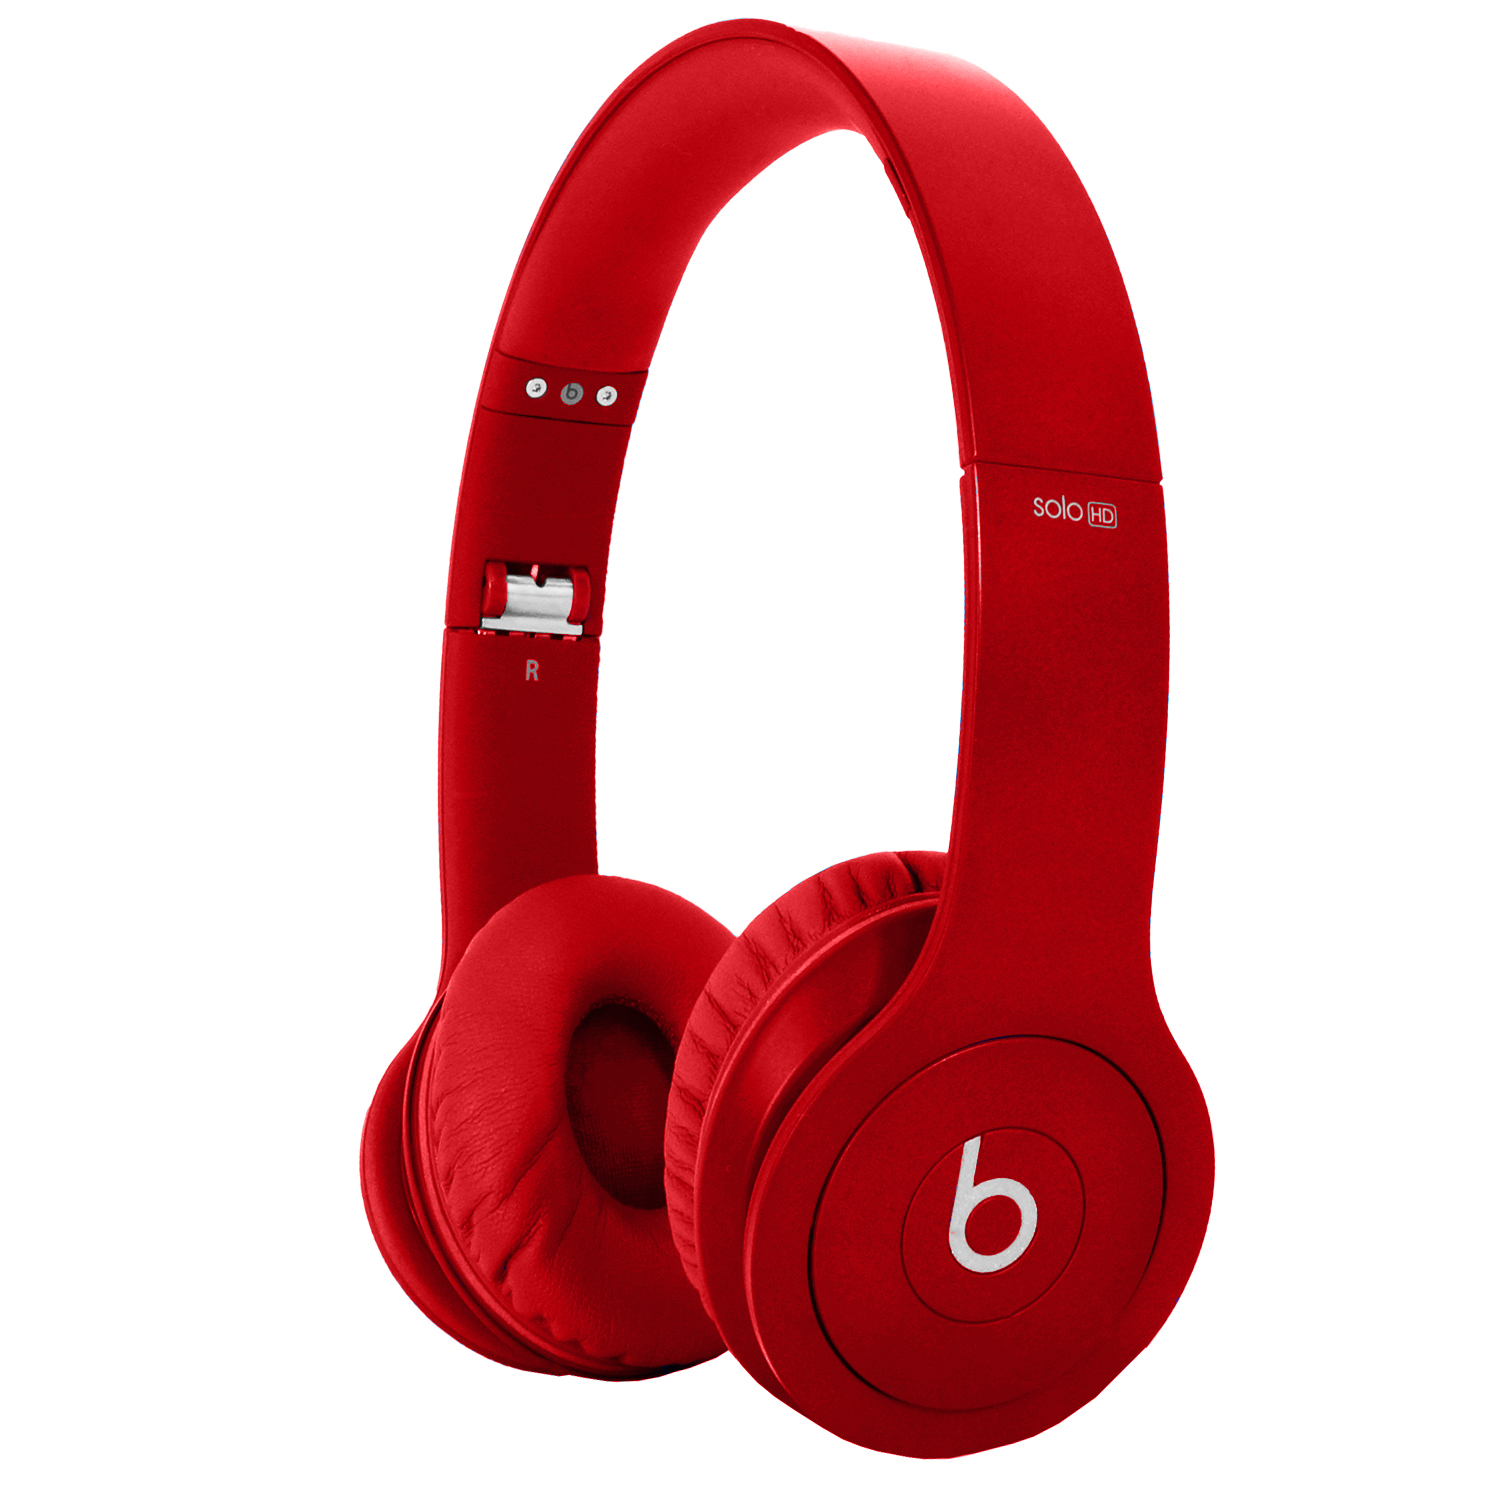 beats by dre solo high definition stereo headphones w control drenched red ebay. Black Bedroom Furniture Sets. Home Design Ideas